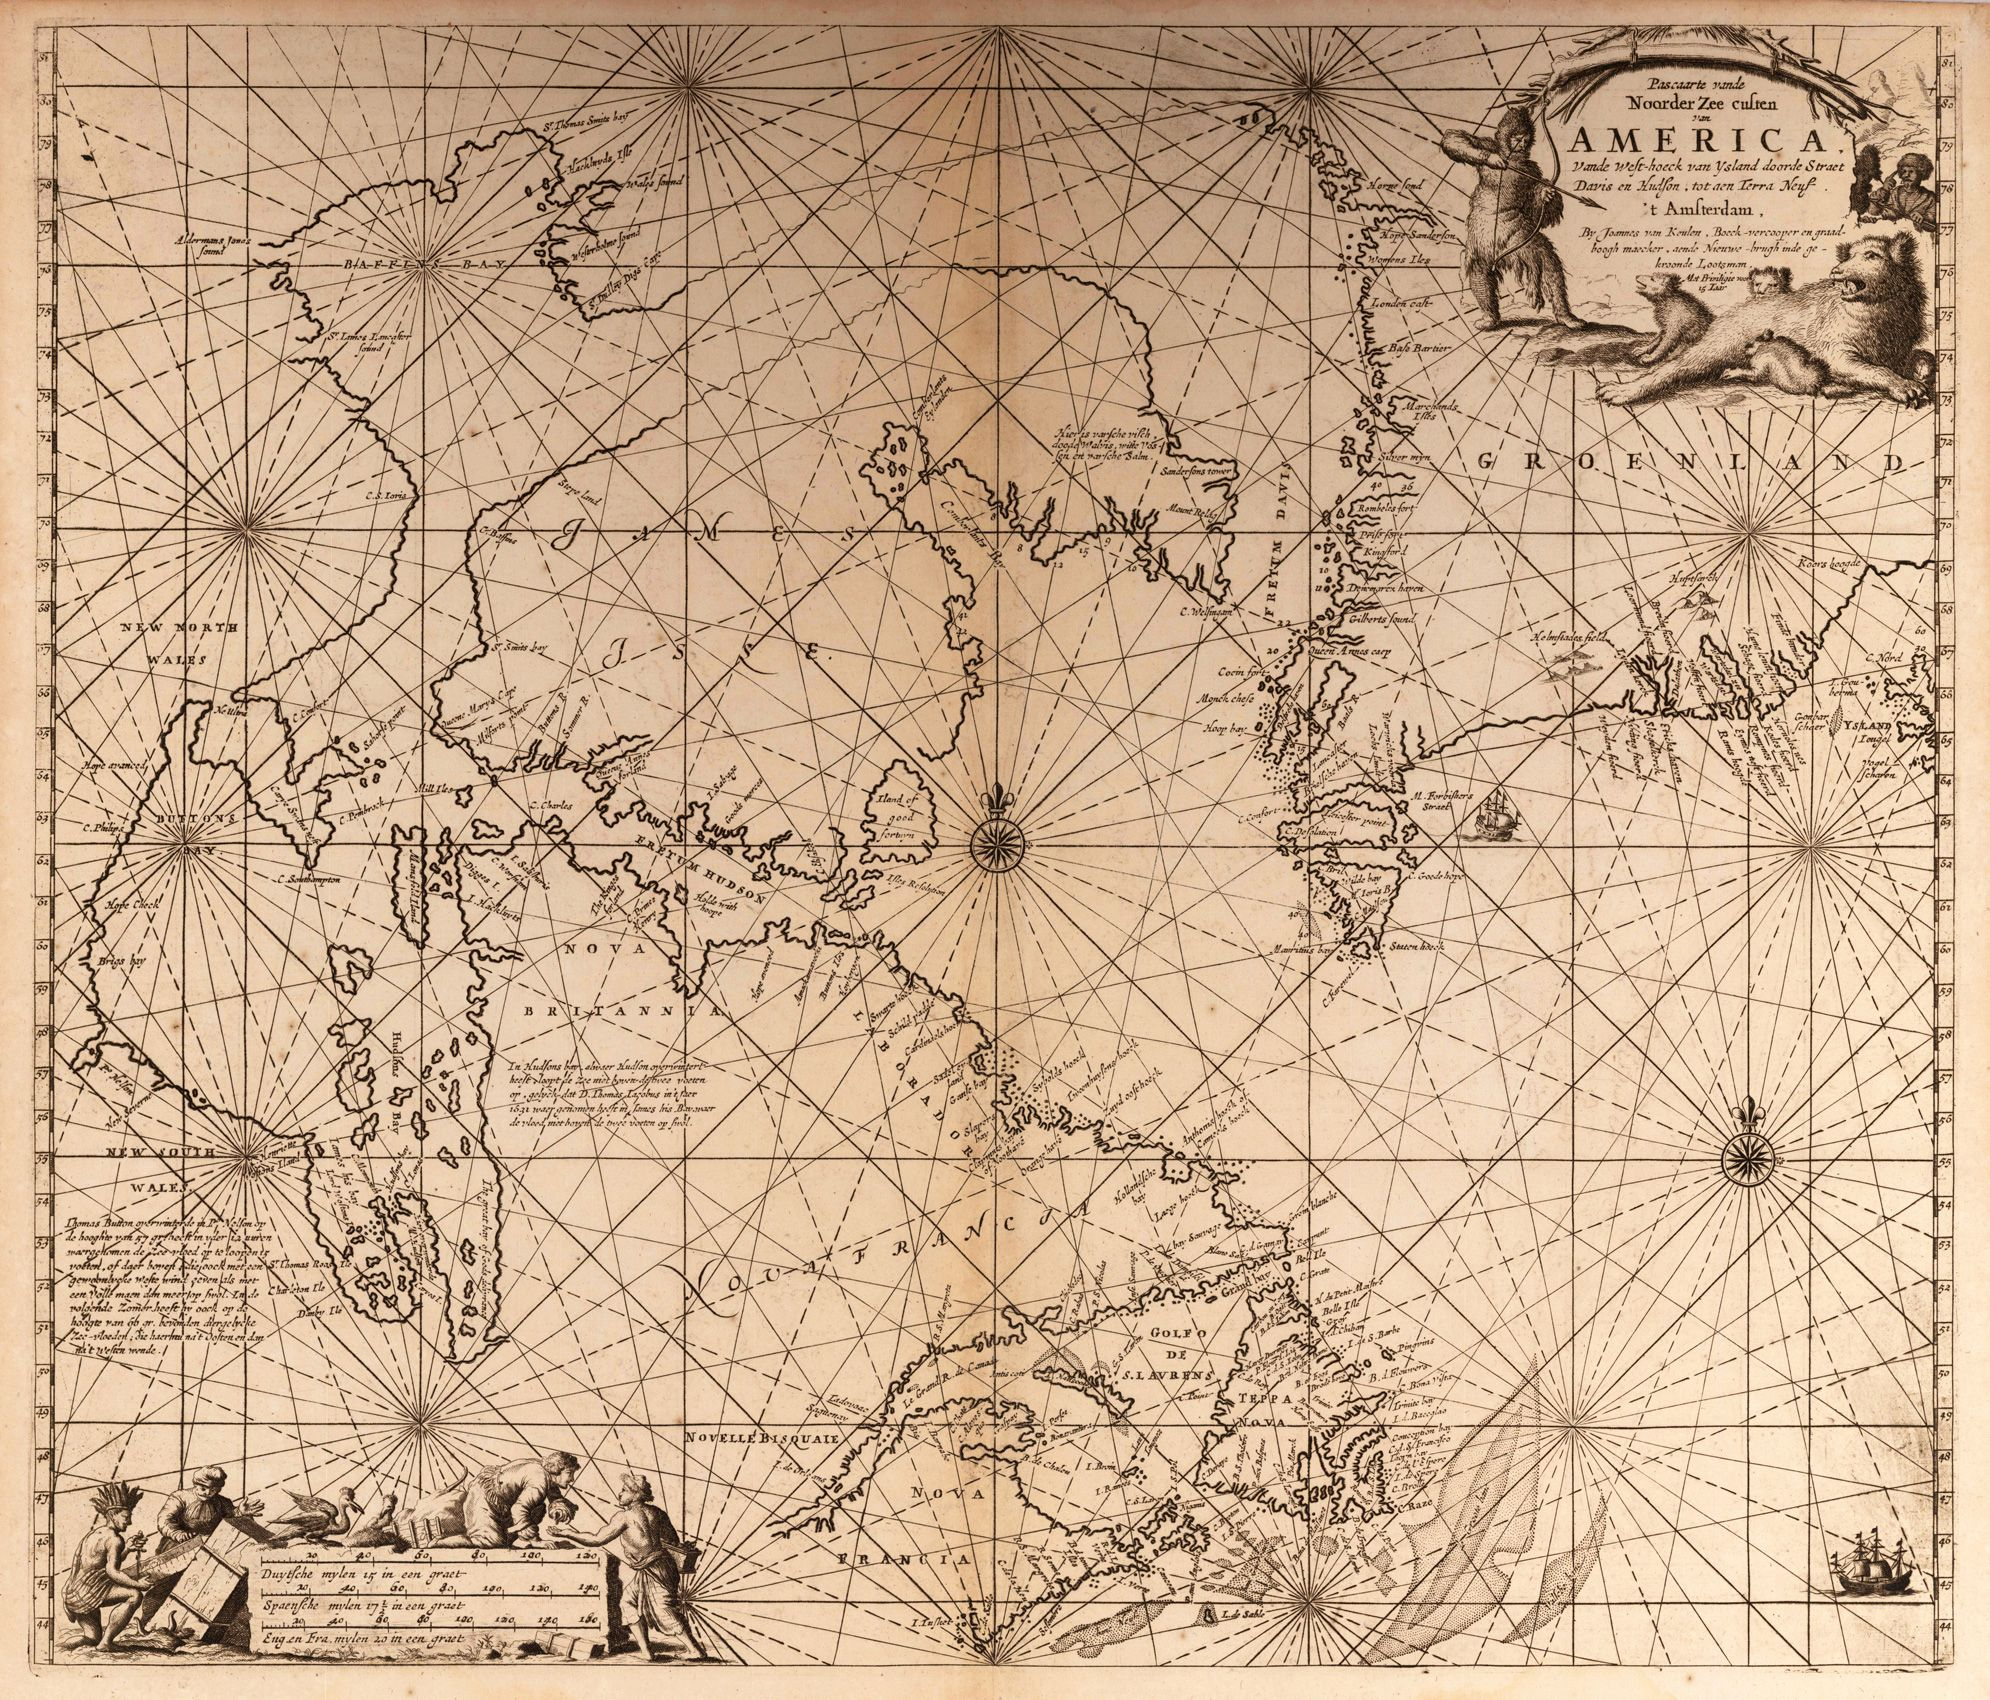 Antique Map Google Search Wedding Prints Inspiration - Antiques us maps with compass